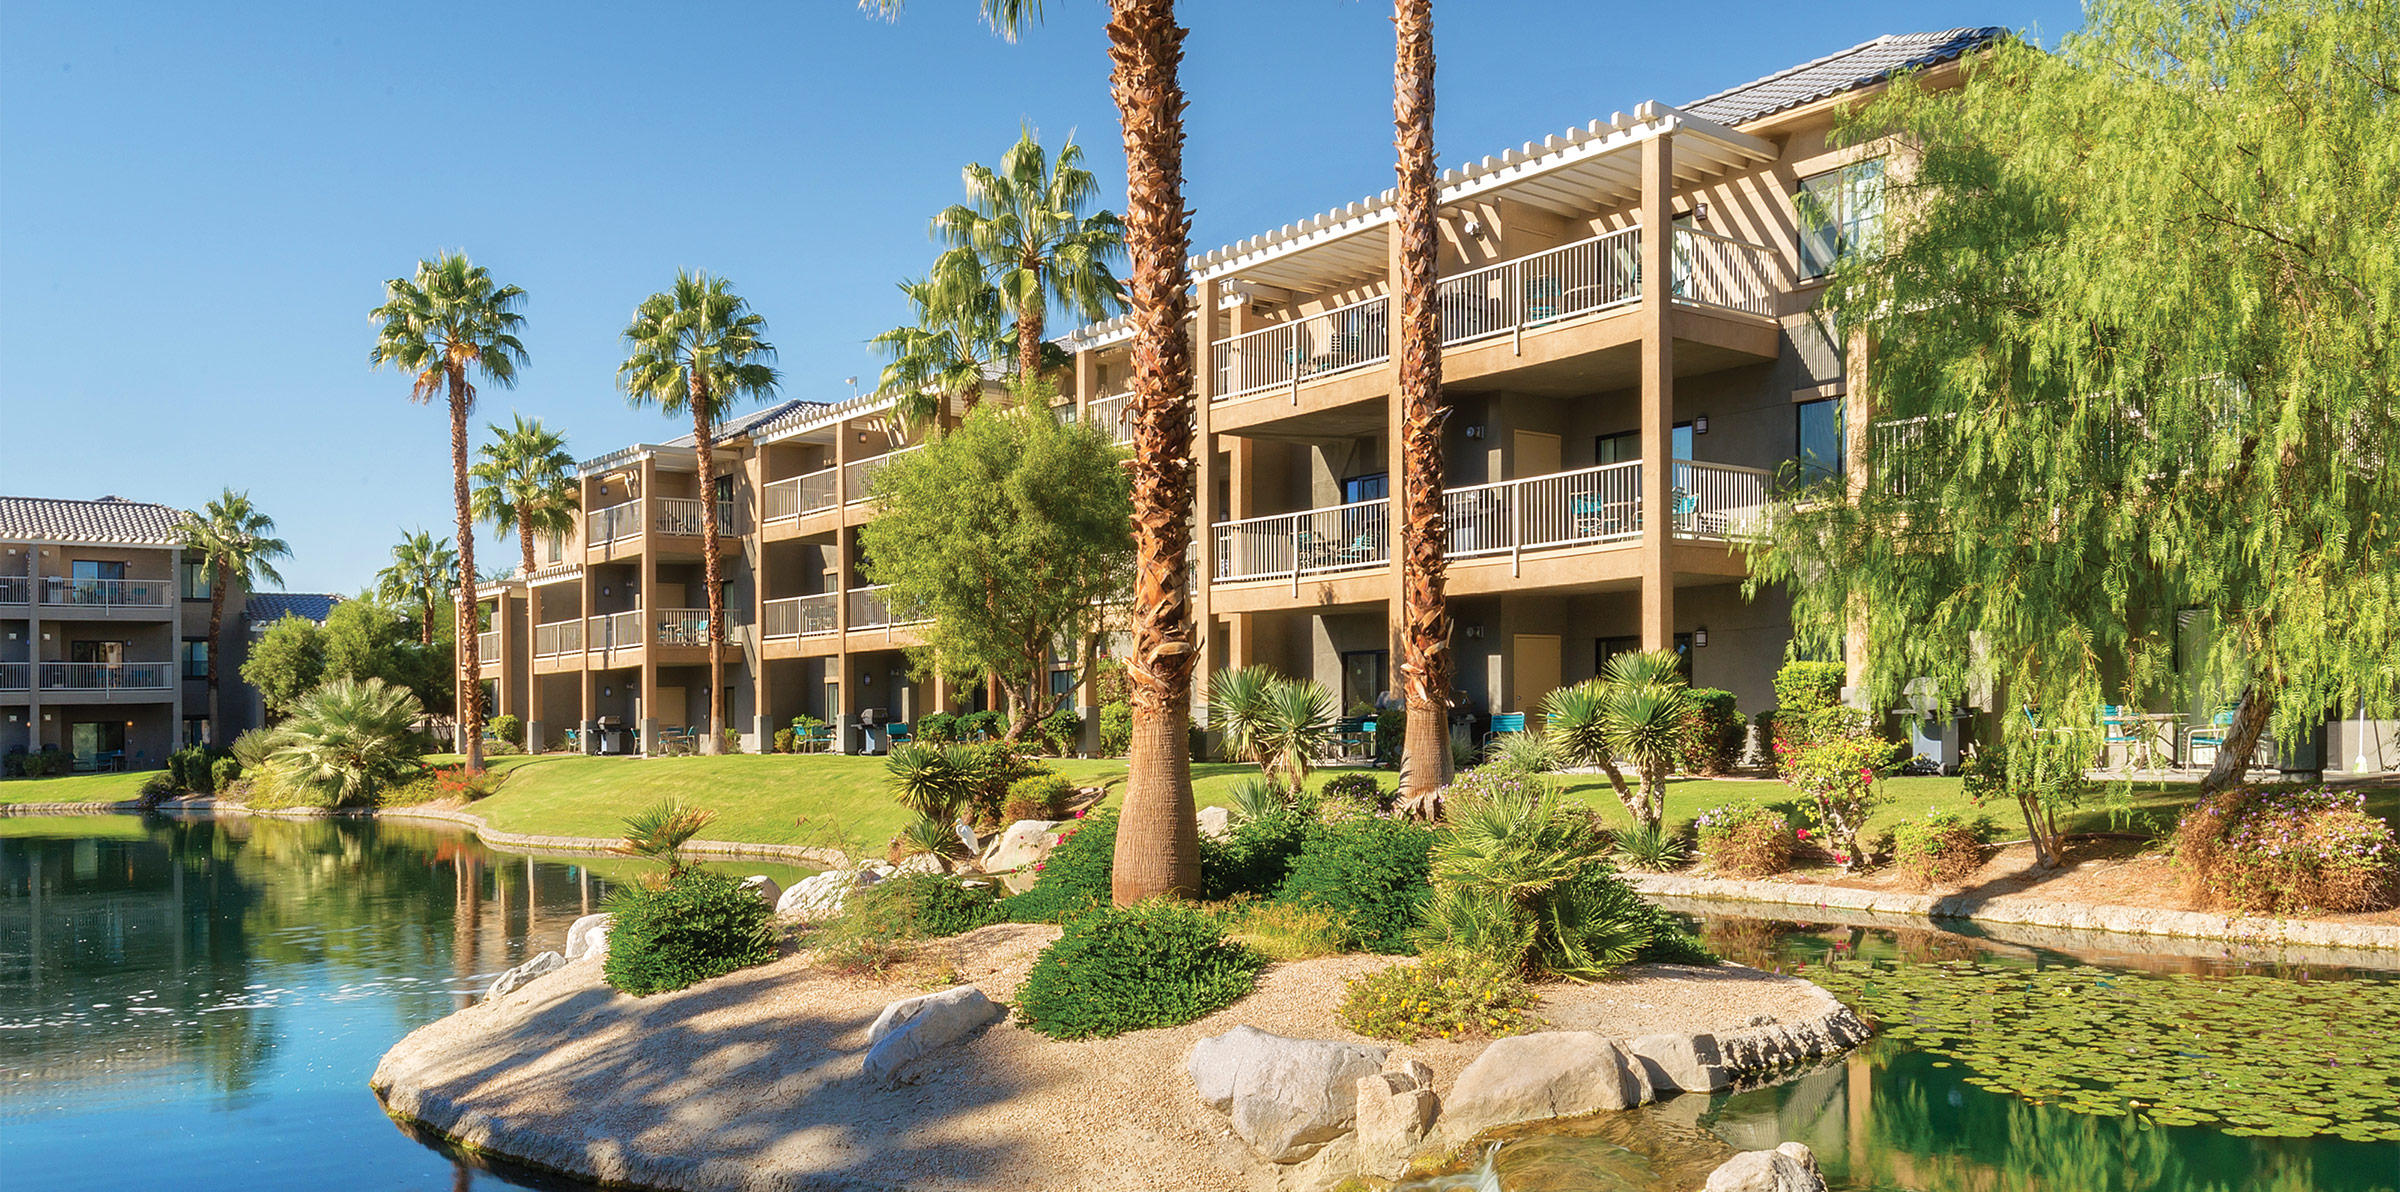 Apartment 3 Bedroom 2 Bath In Indio  CA   Palm Springs  5 miles from COACHELLA photo 19225880